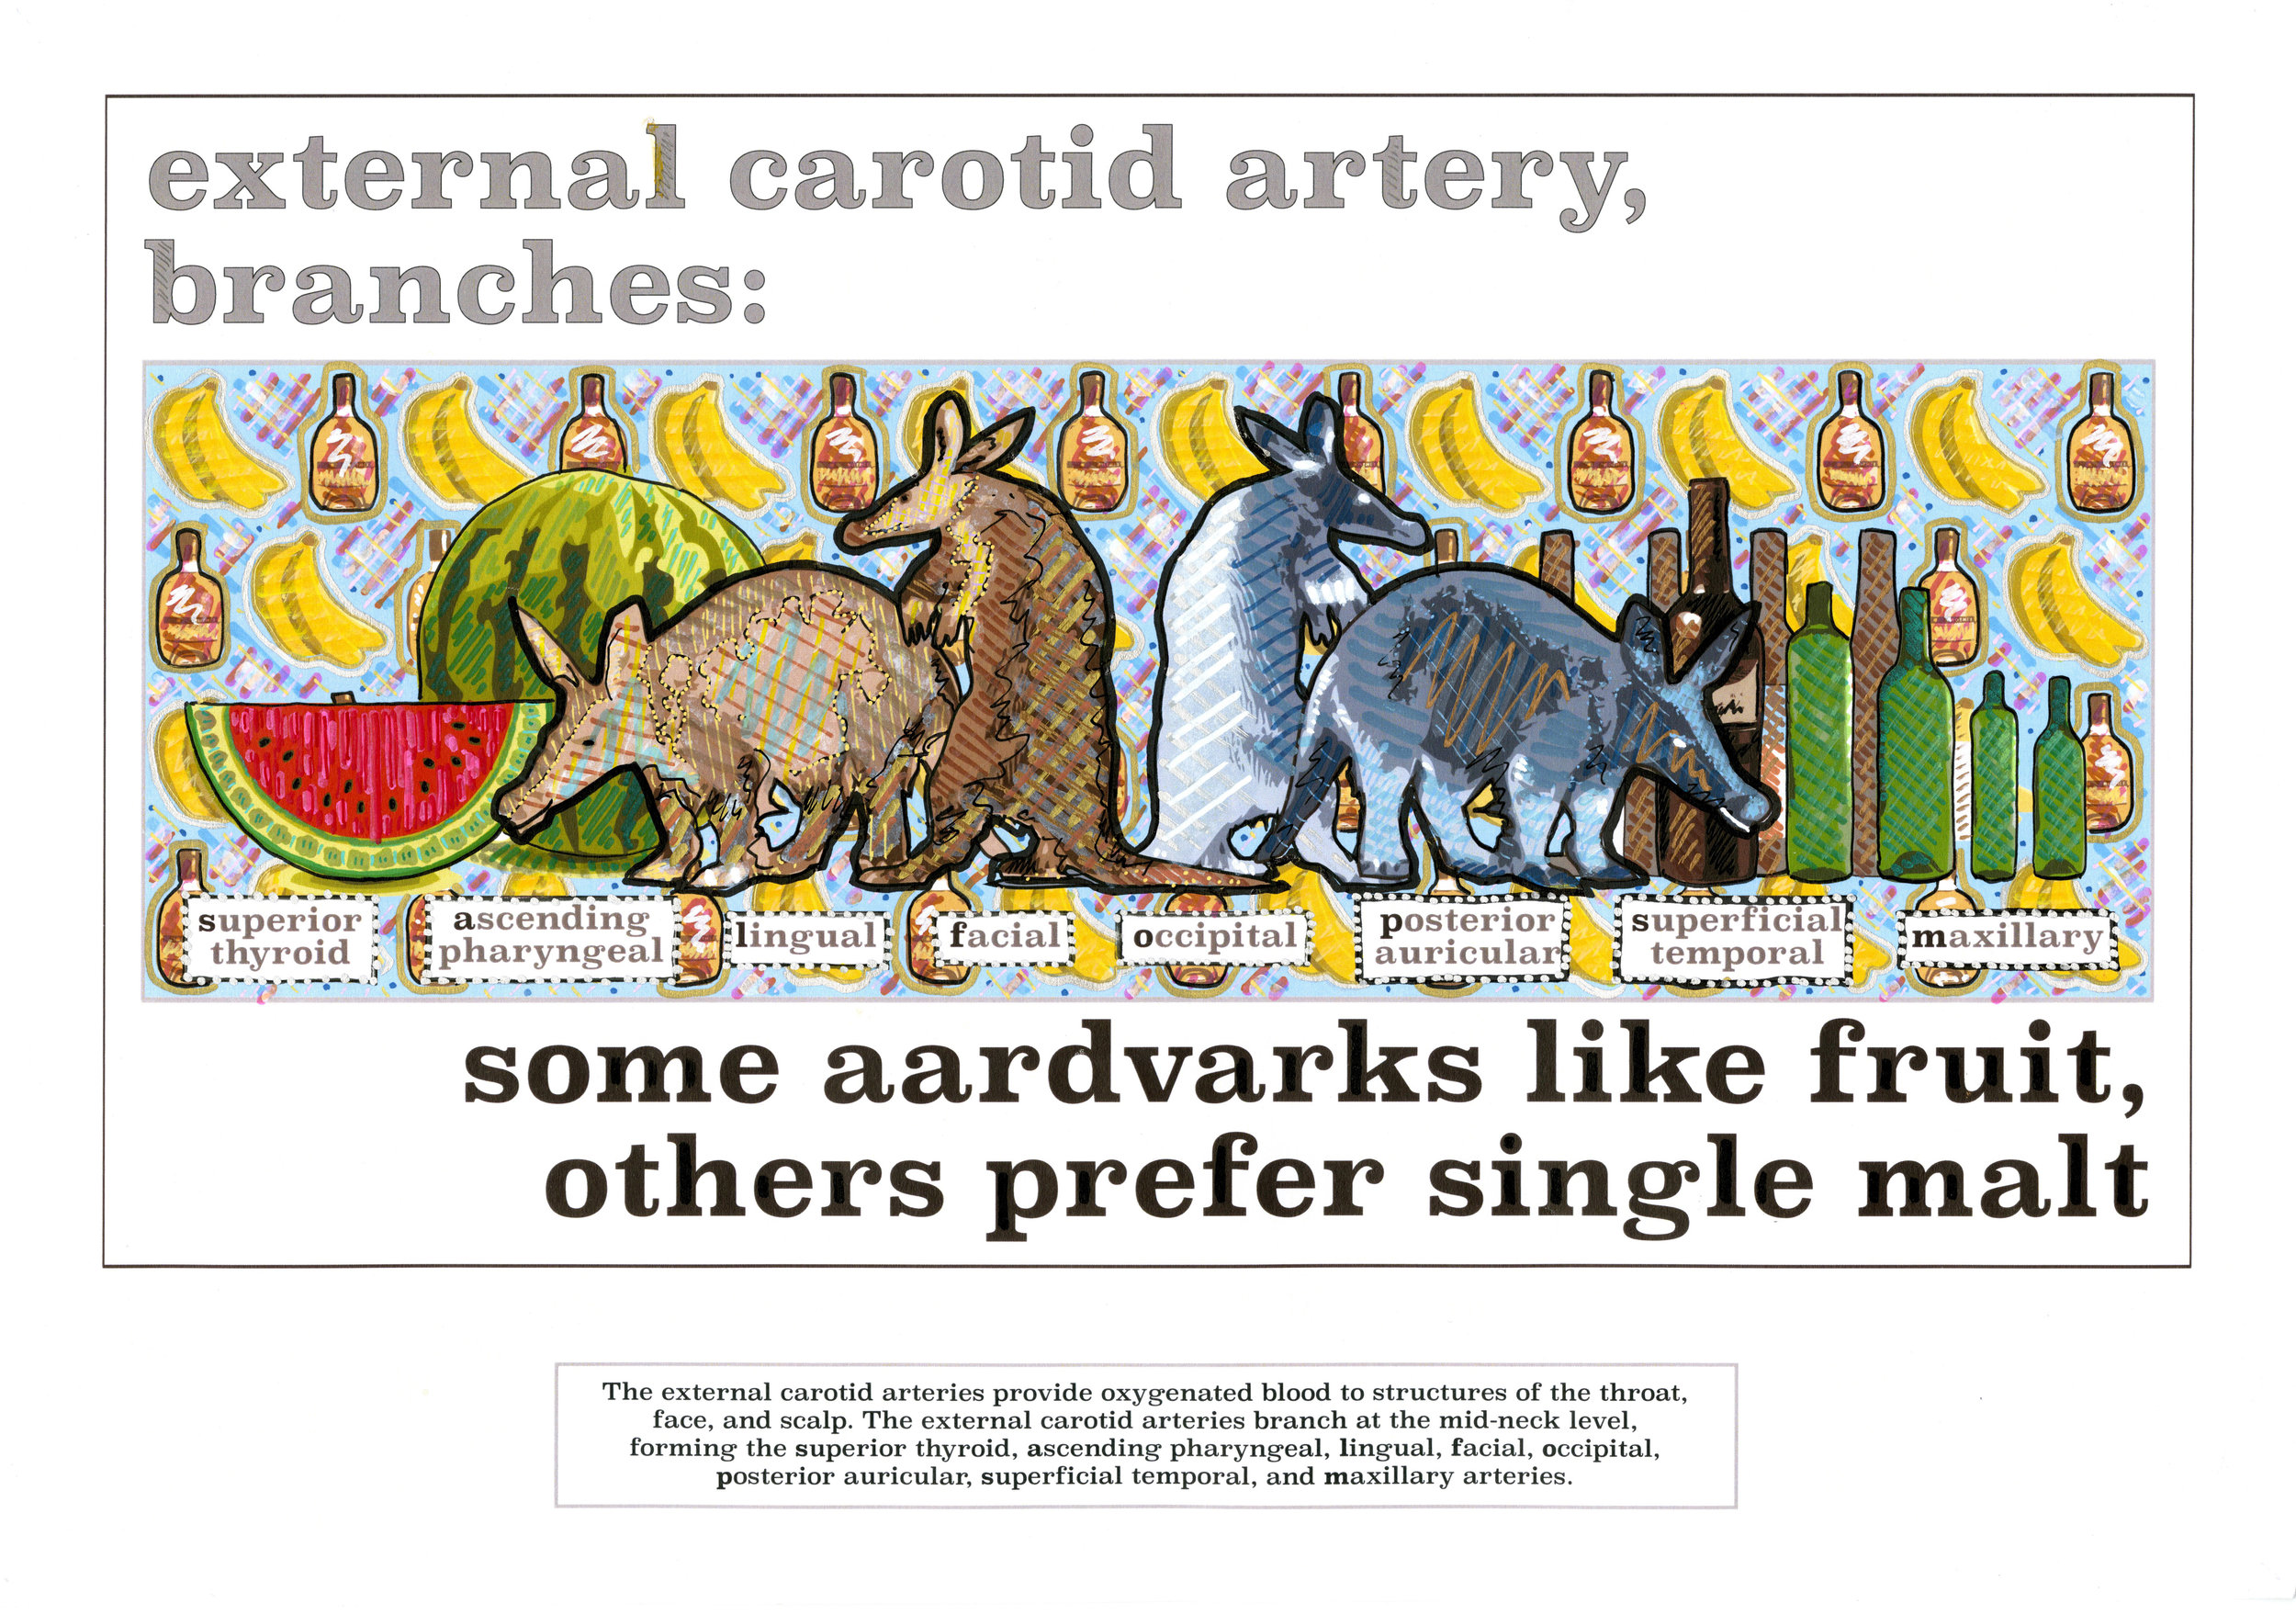 some aardvaarks like fruit.jpg